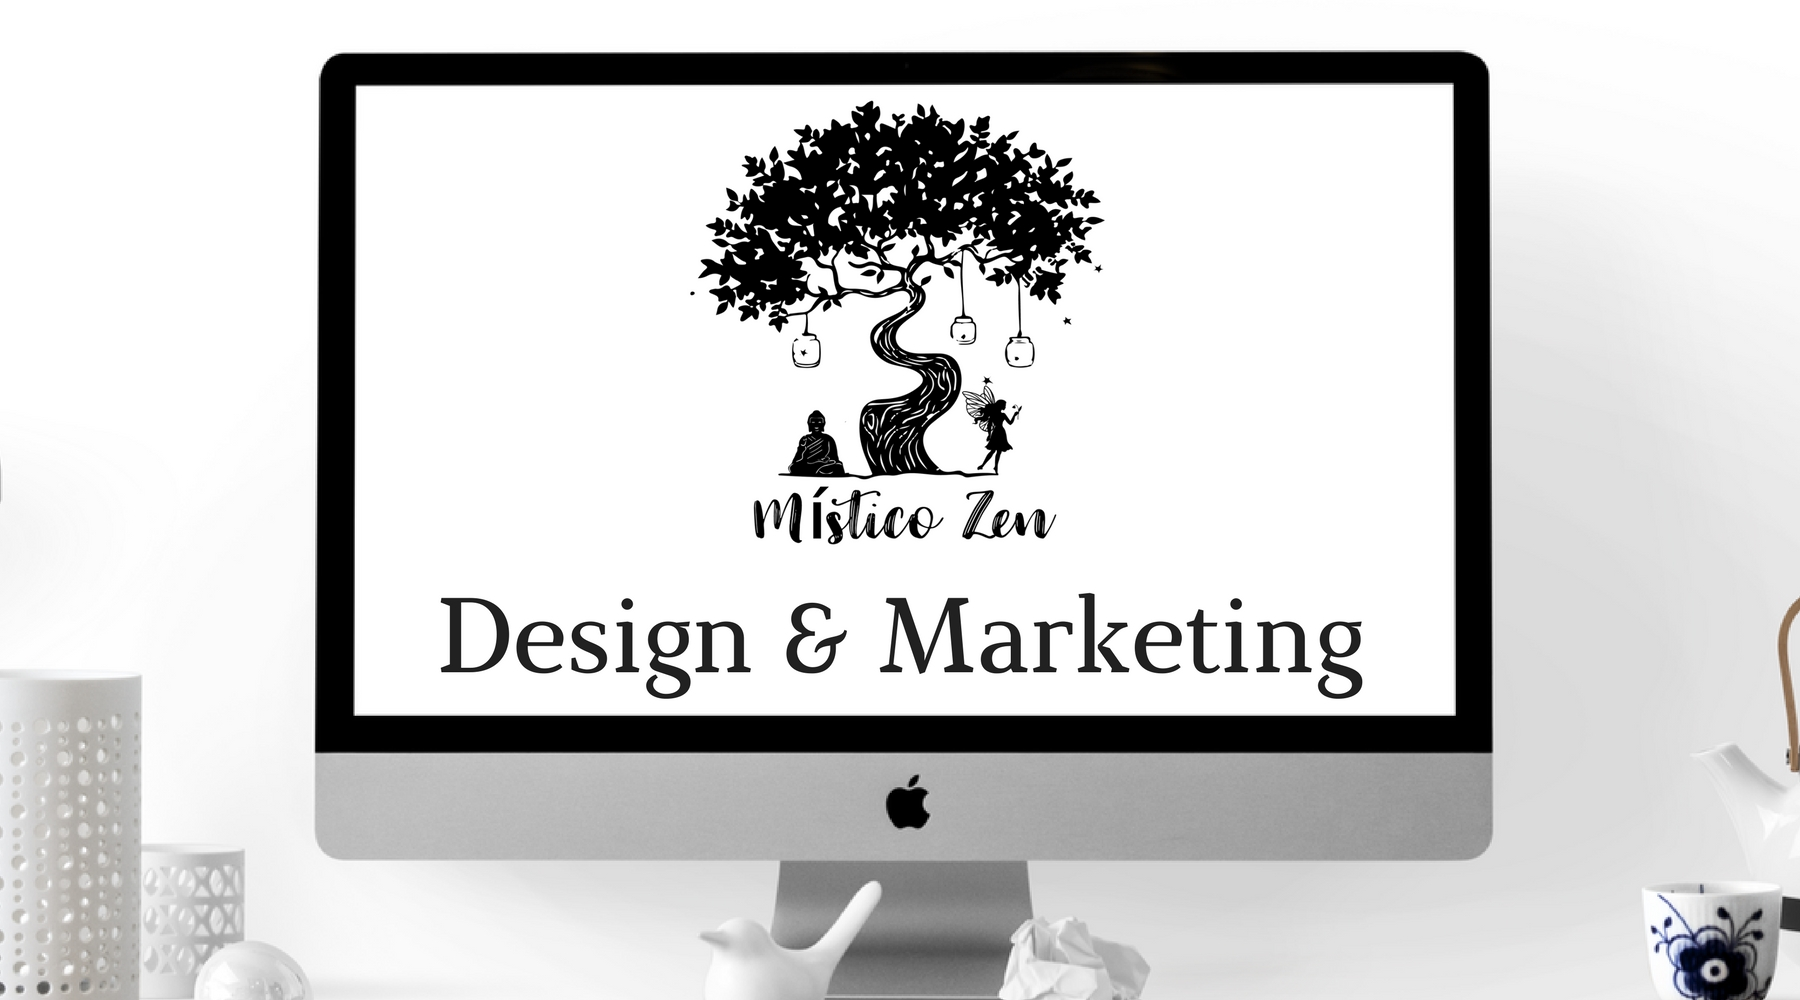 misticozen design e marketing telemóvel-2